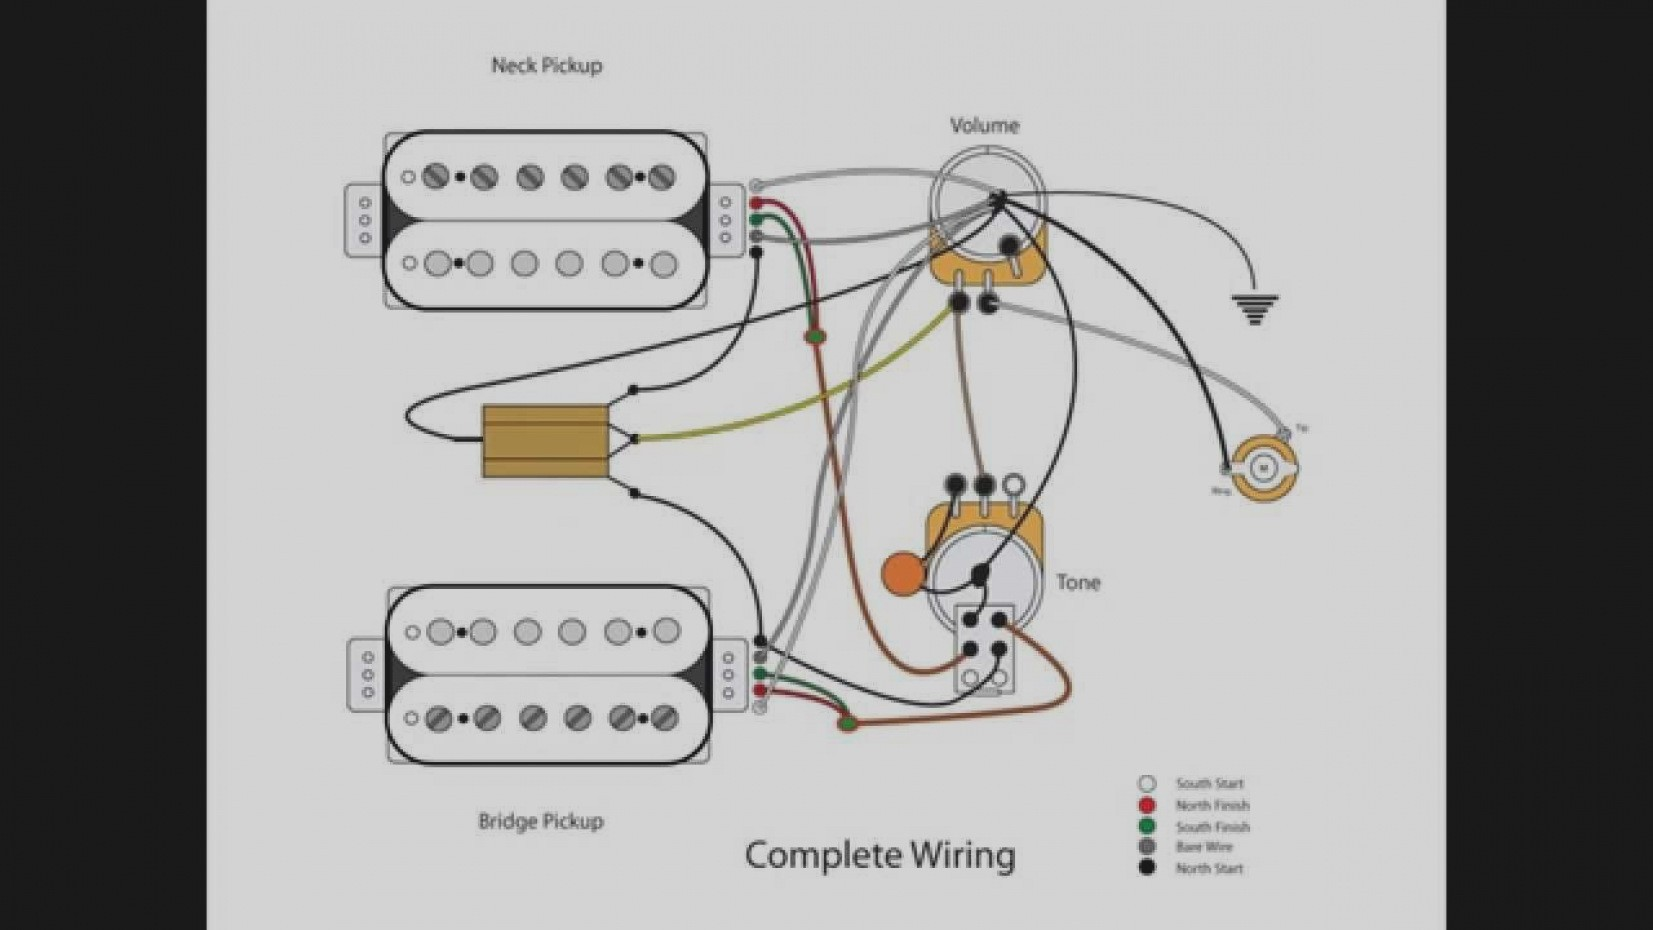 Gfs Pickups 90 Wiring Diagram Gibson Pickup Wiring Diagram